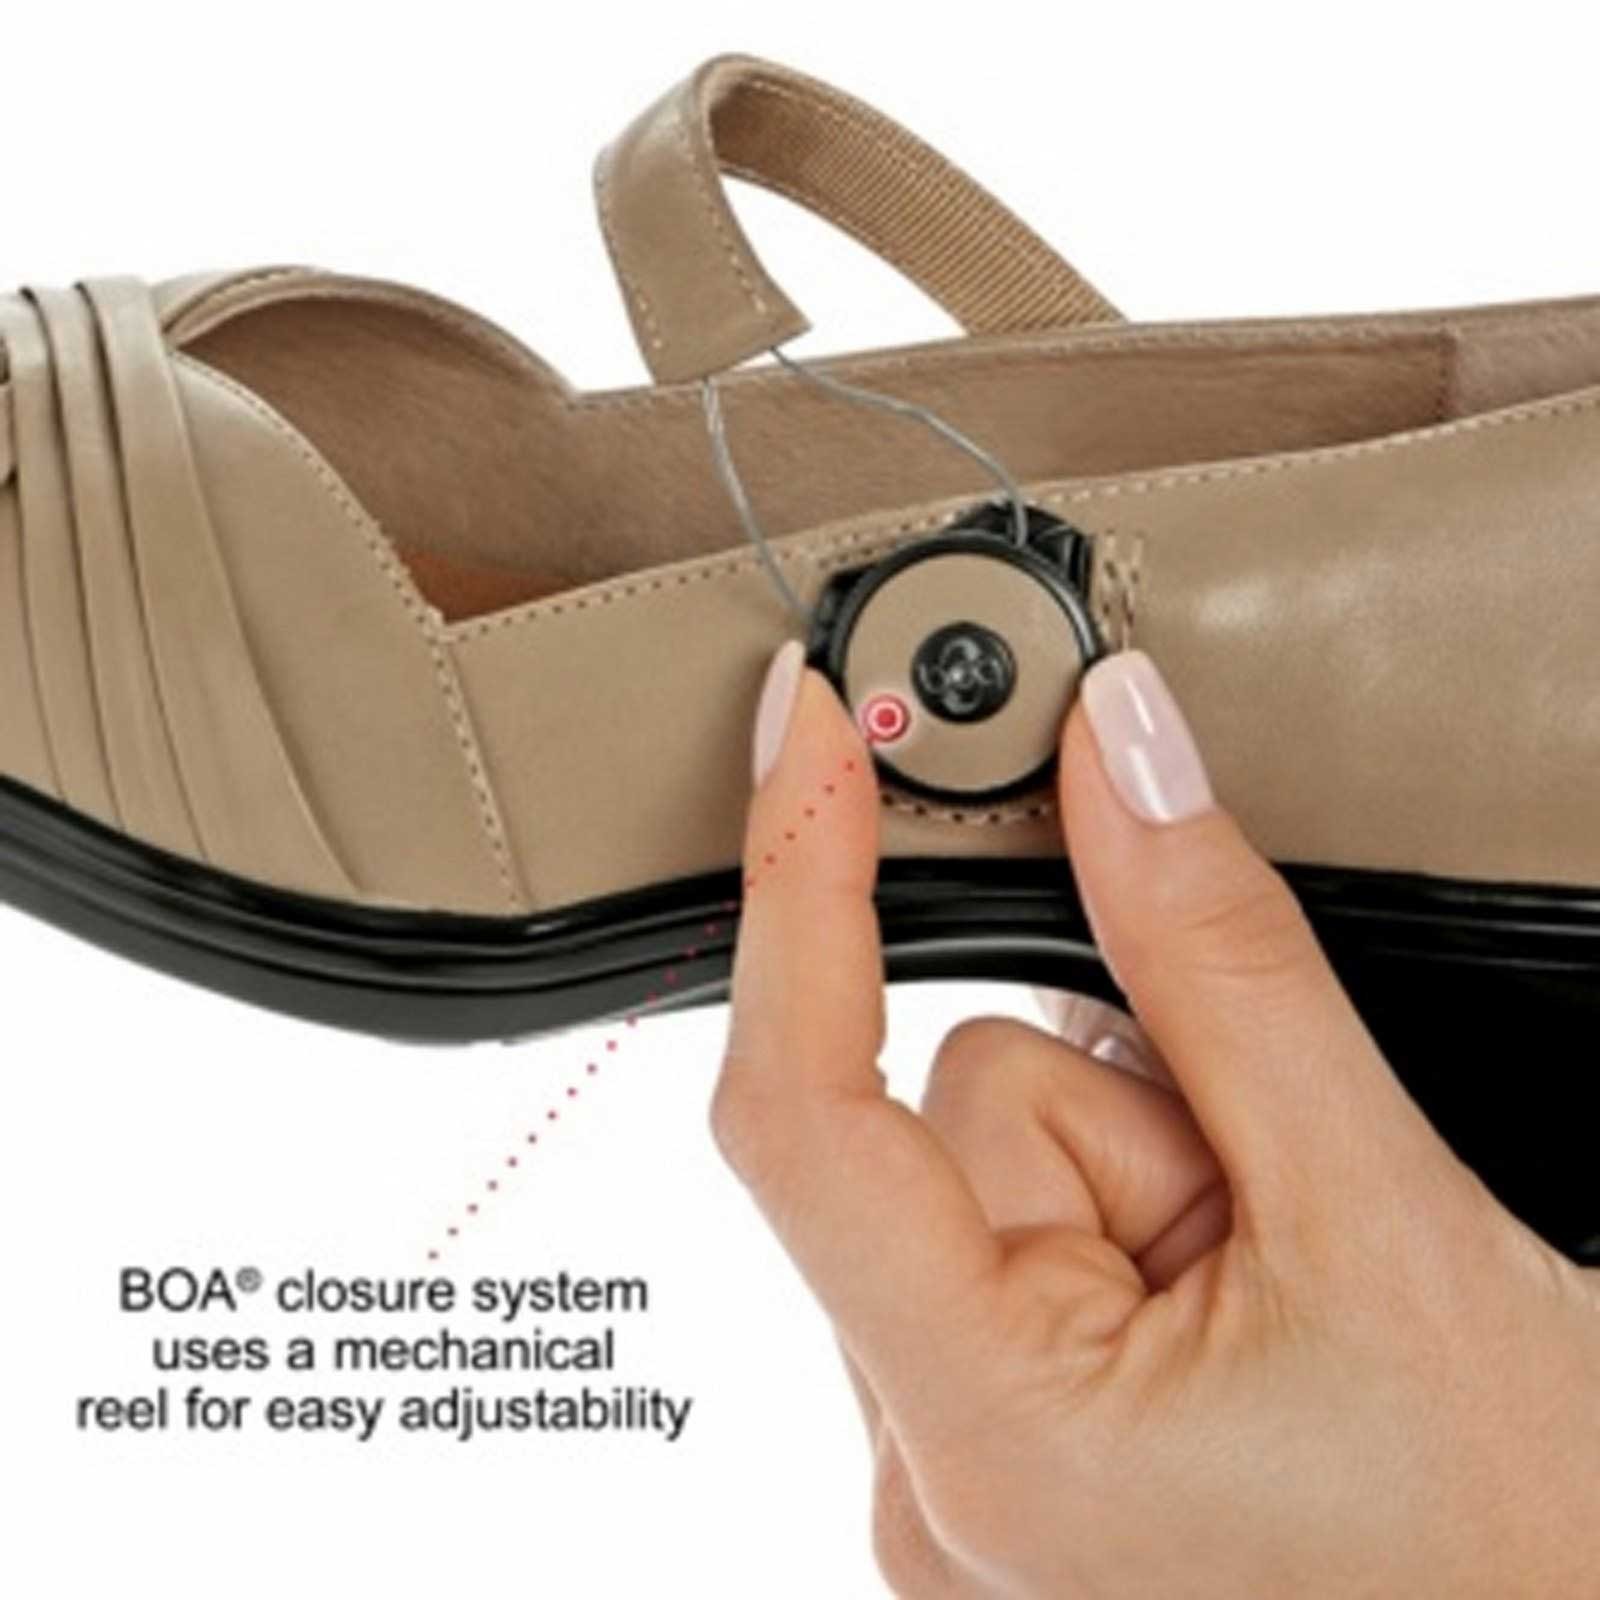 s shoes fashion extra comfort dr insoles with walking comforter katy womens wdei diabetic athletic brand